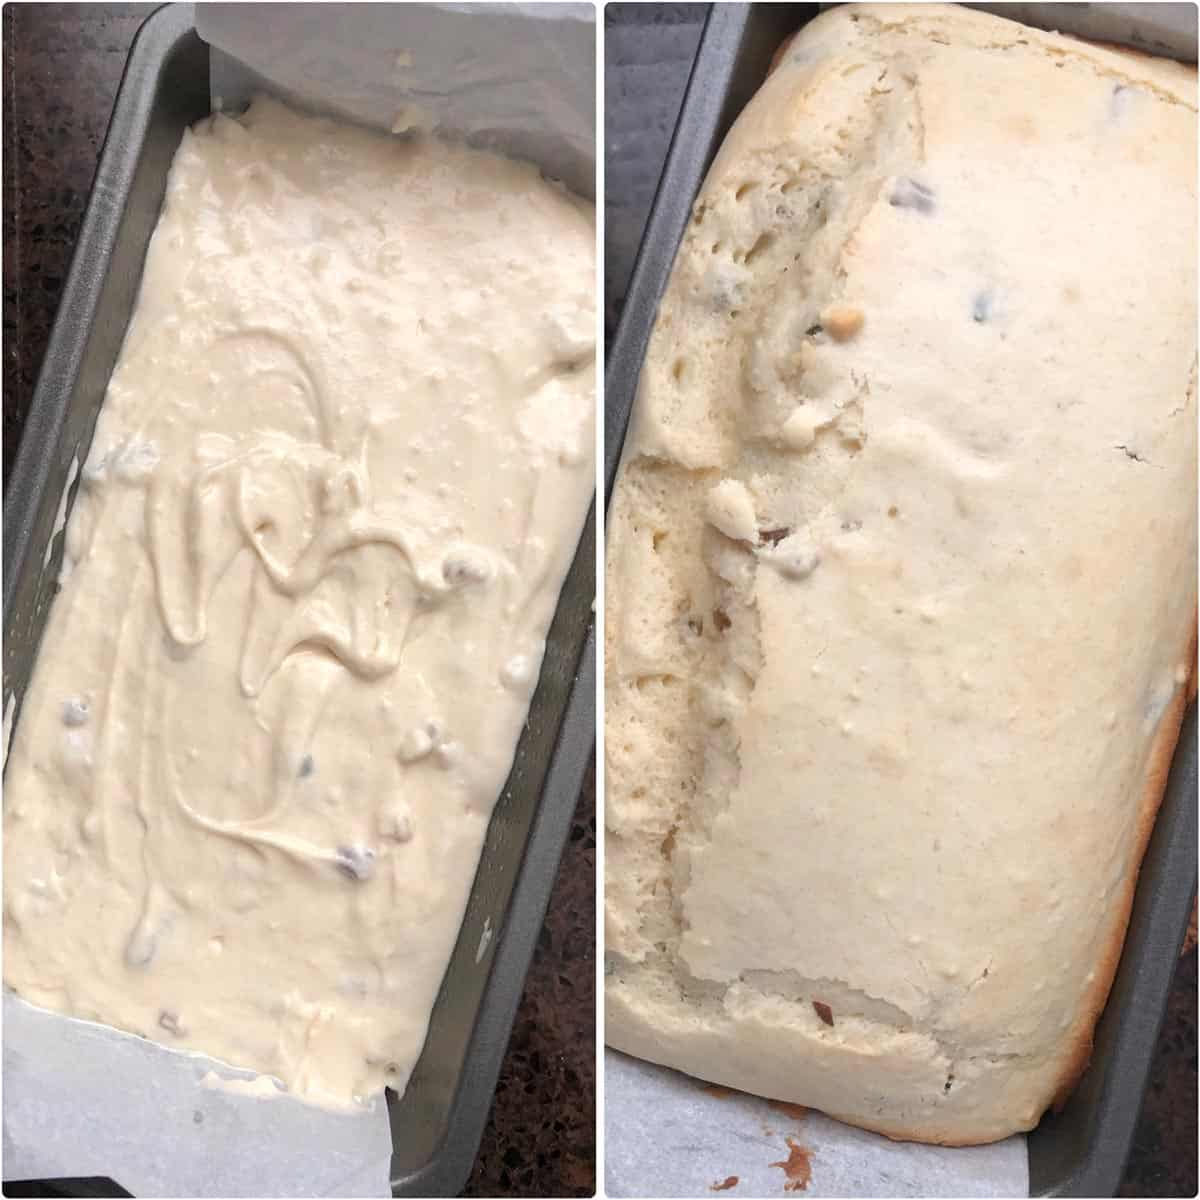 Before and after baking the bread